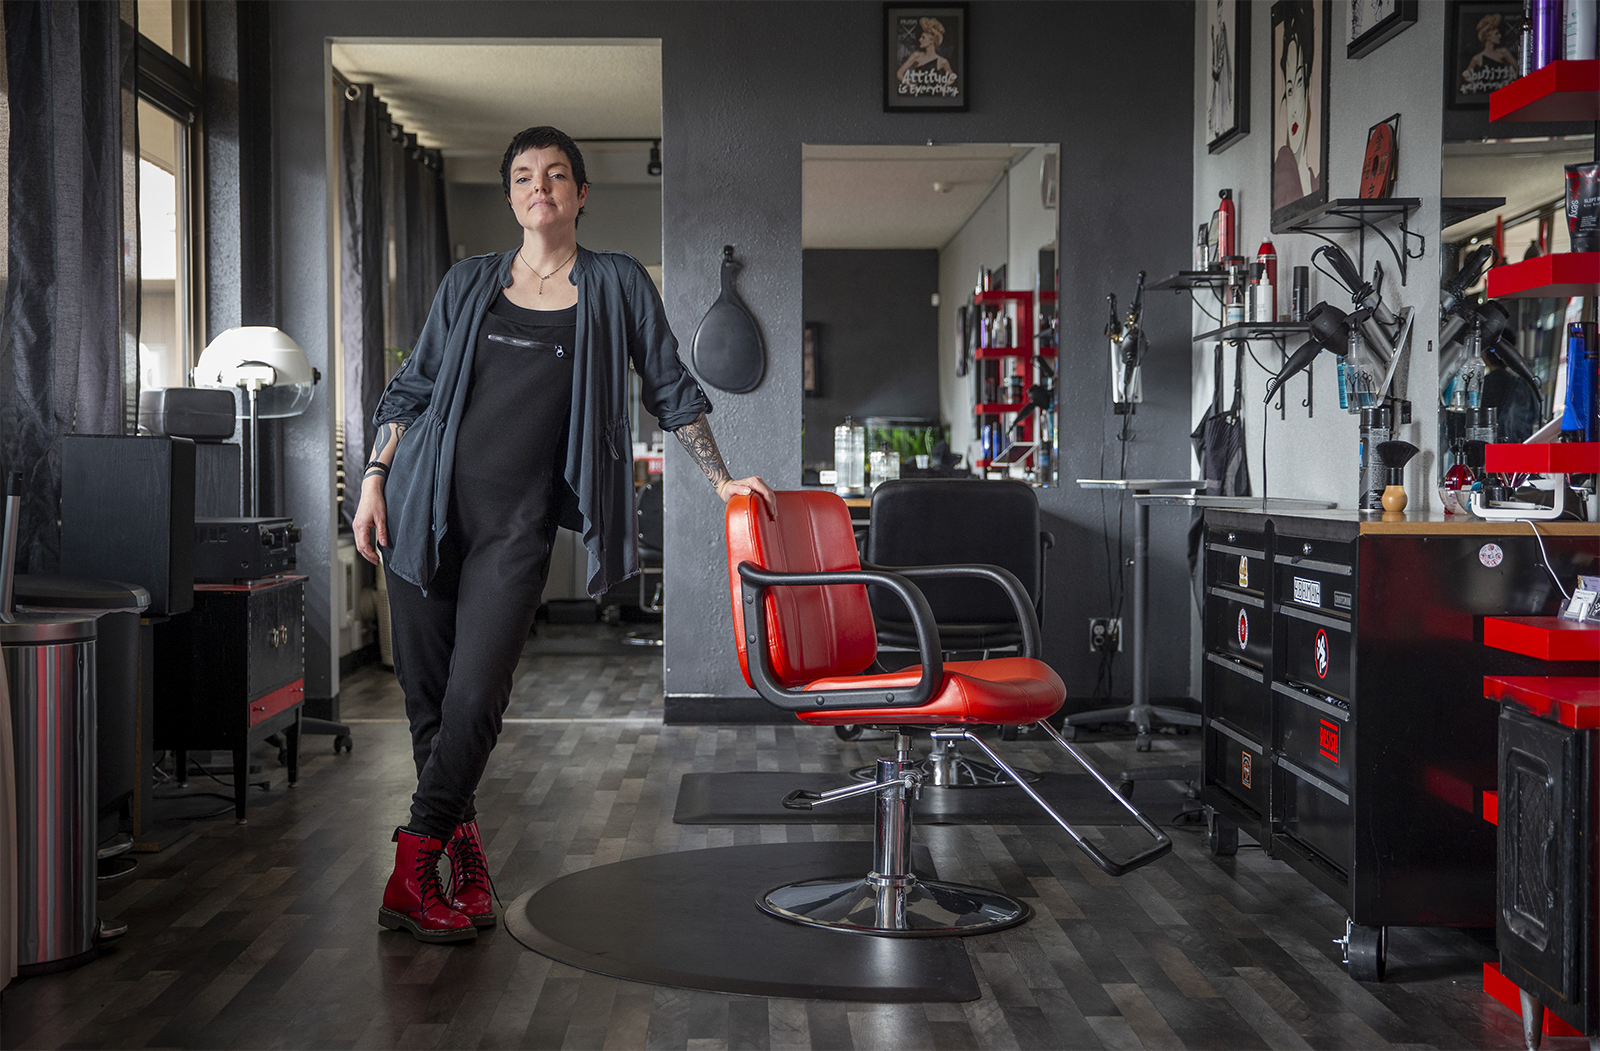 Cristina Stone, owner of 4th Dimension Salon, has closed her shop and has seen her income vanish along with all the stylists who rented space in the shop.